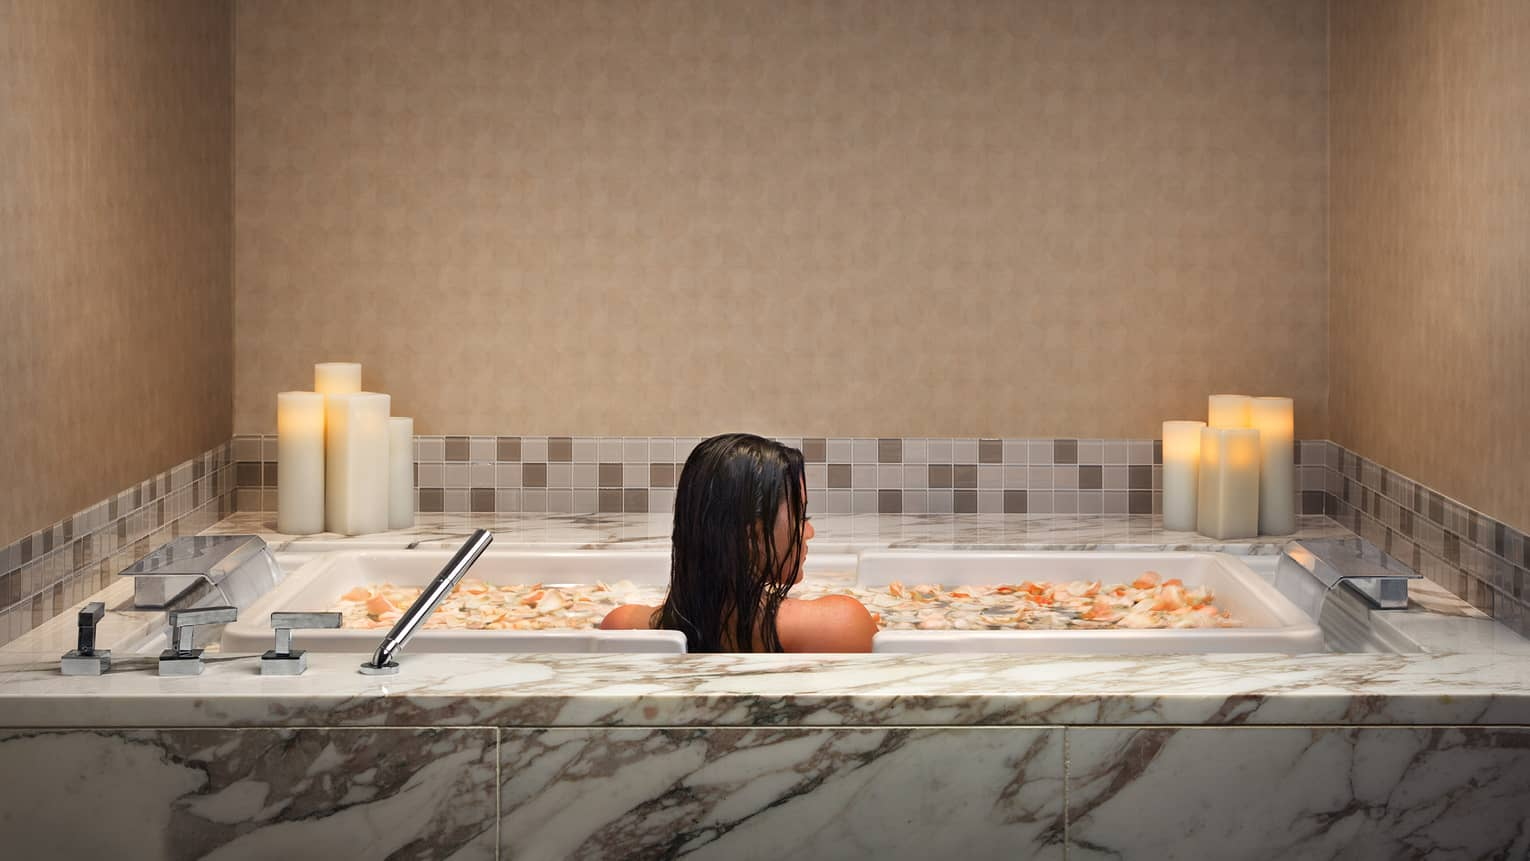 Woman soaks in marble tub filled with flower petals and lined with candles